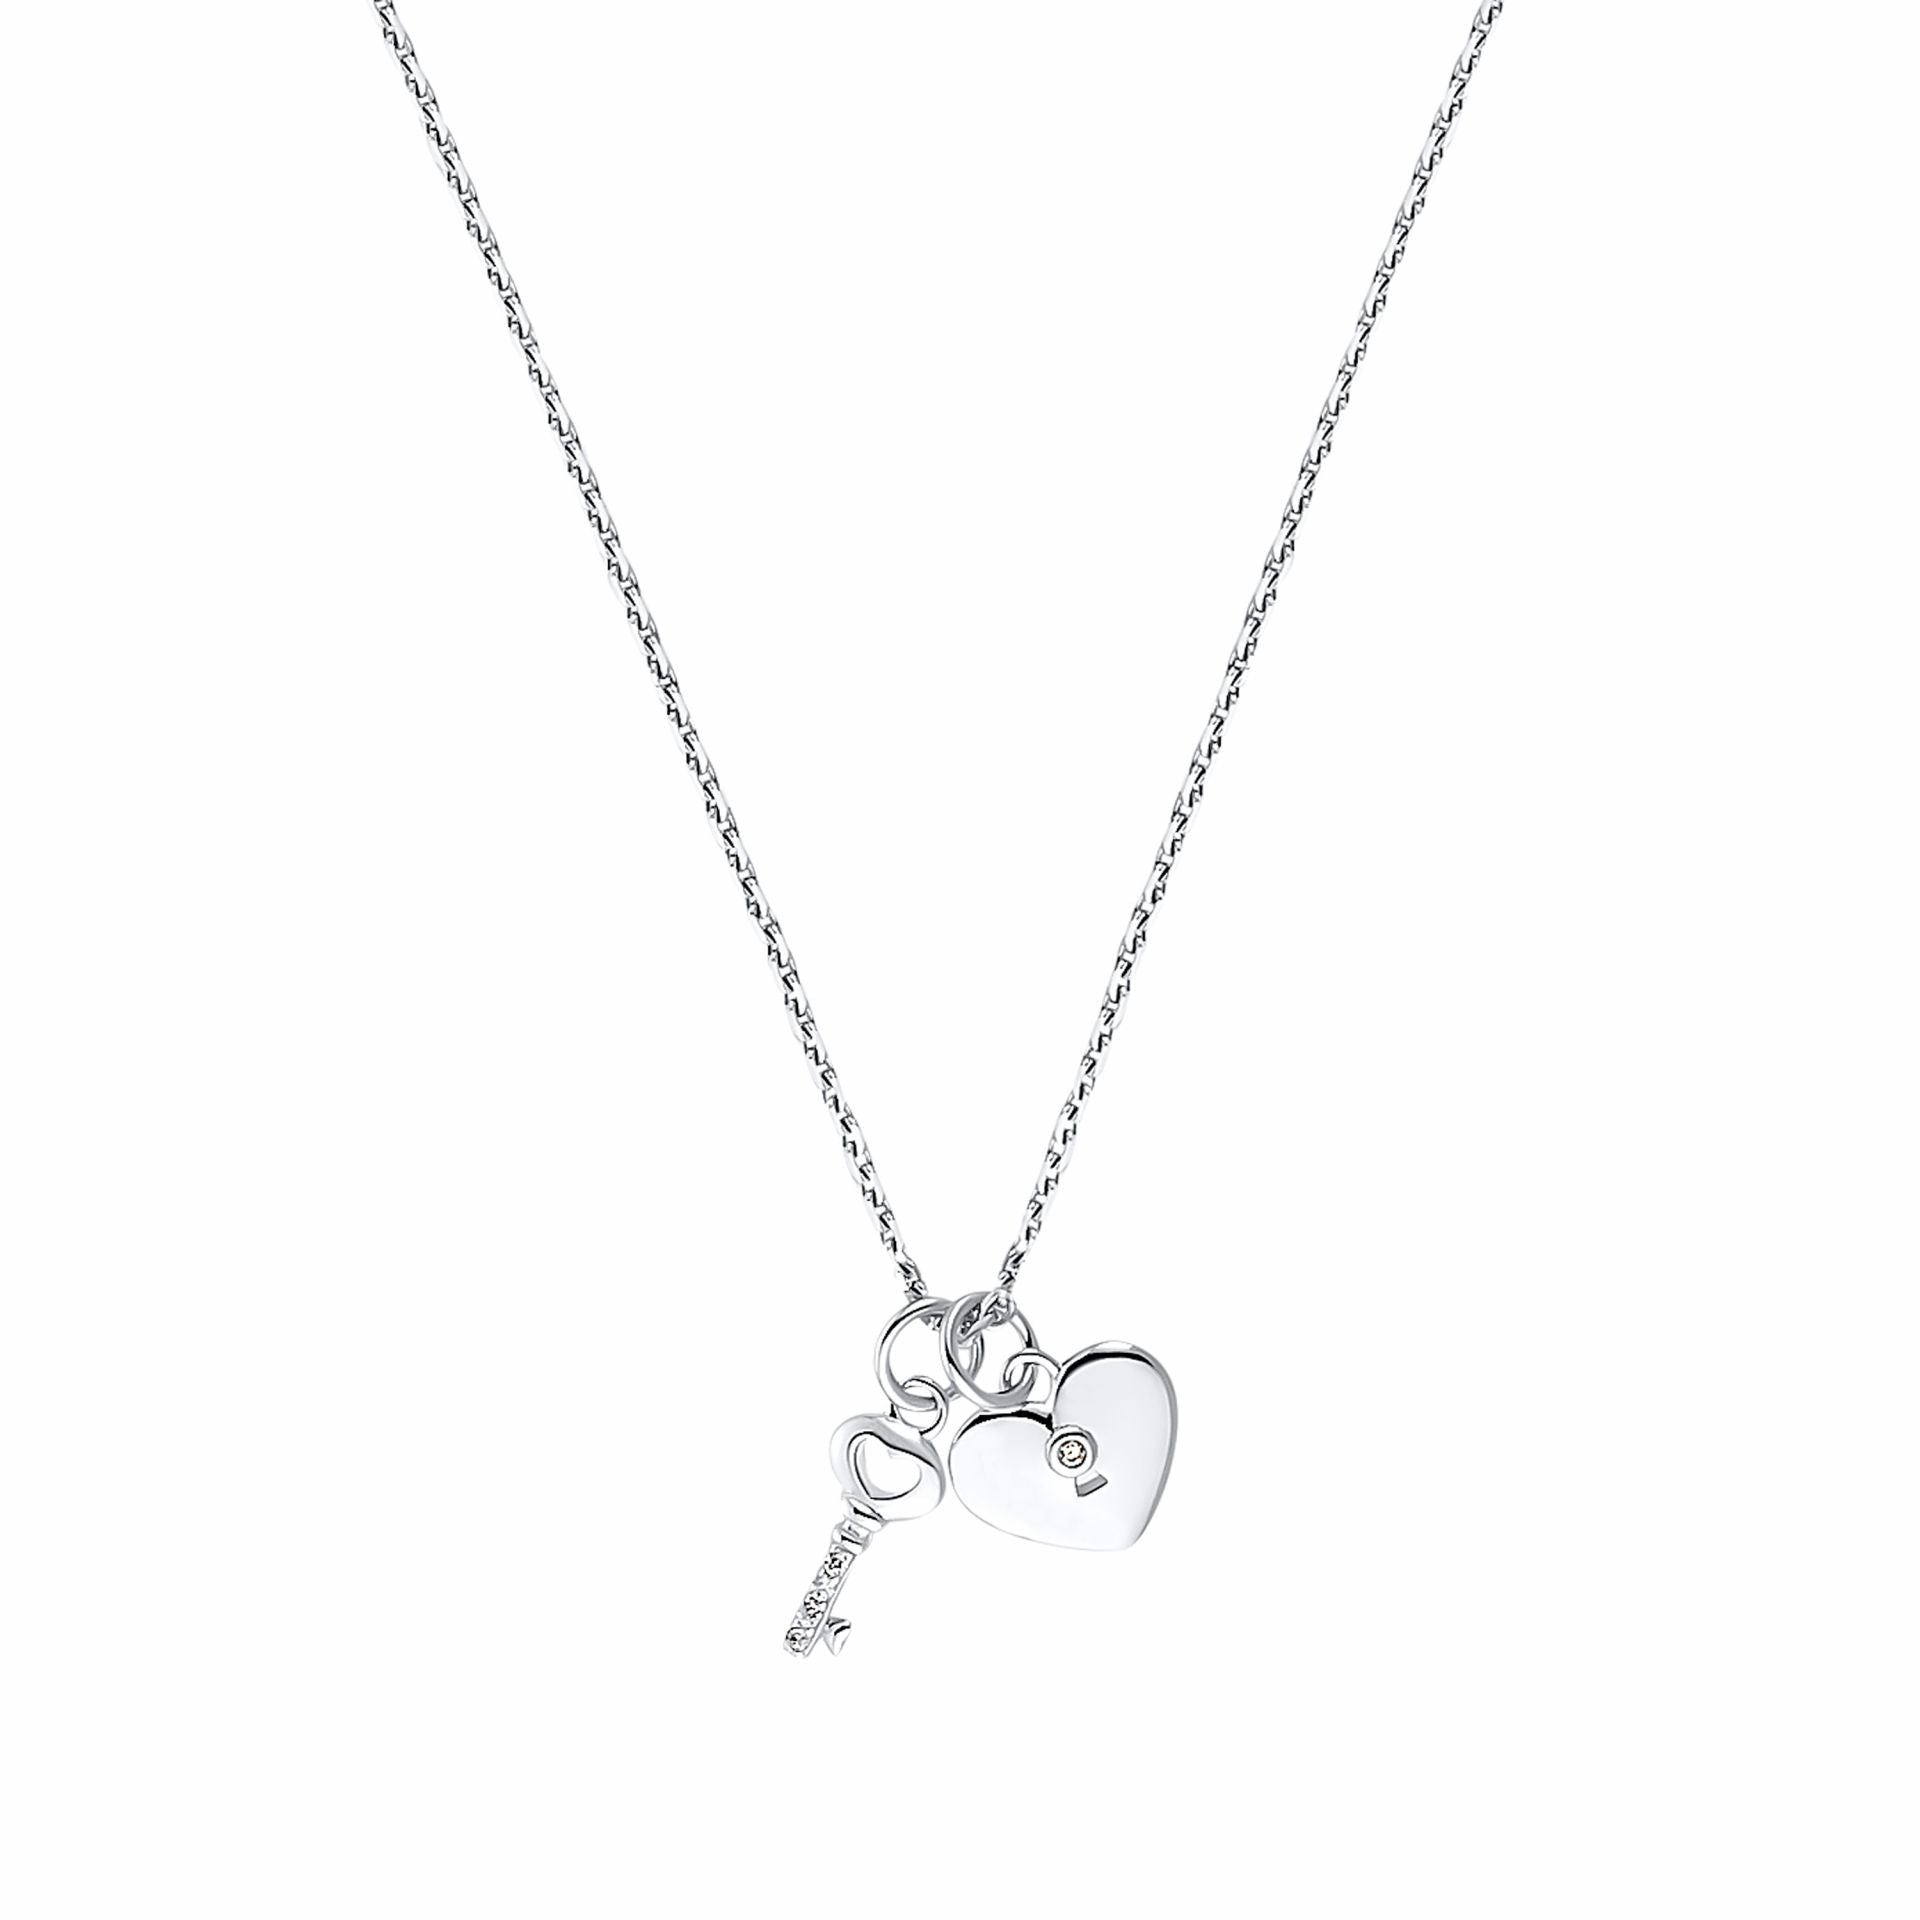 KEY & HEART necklace with pendant, sterling silver 925